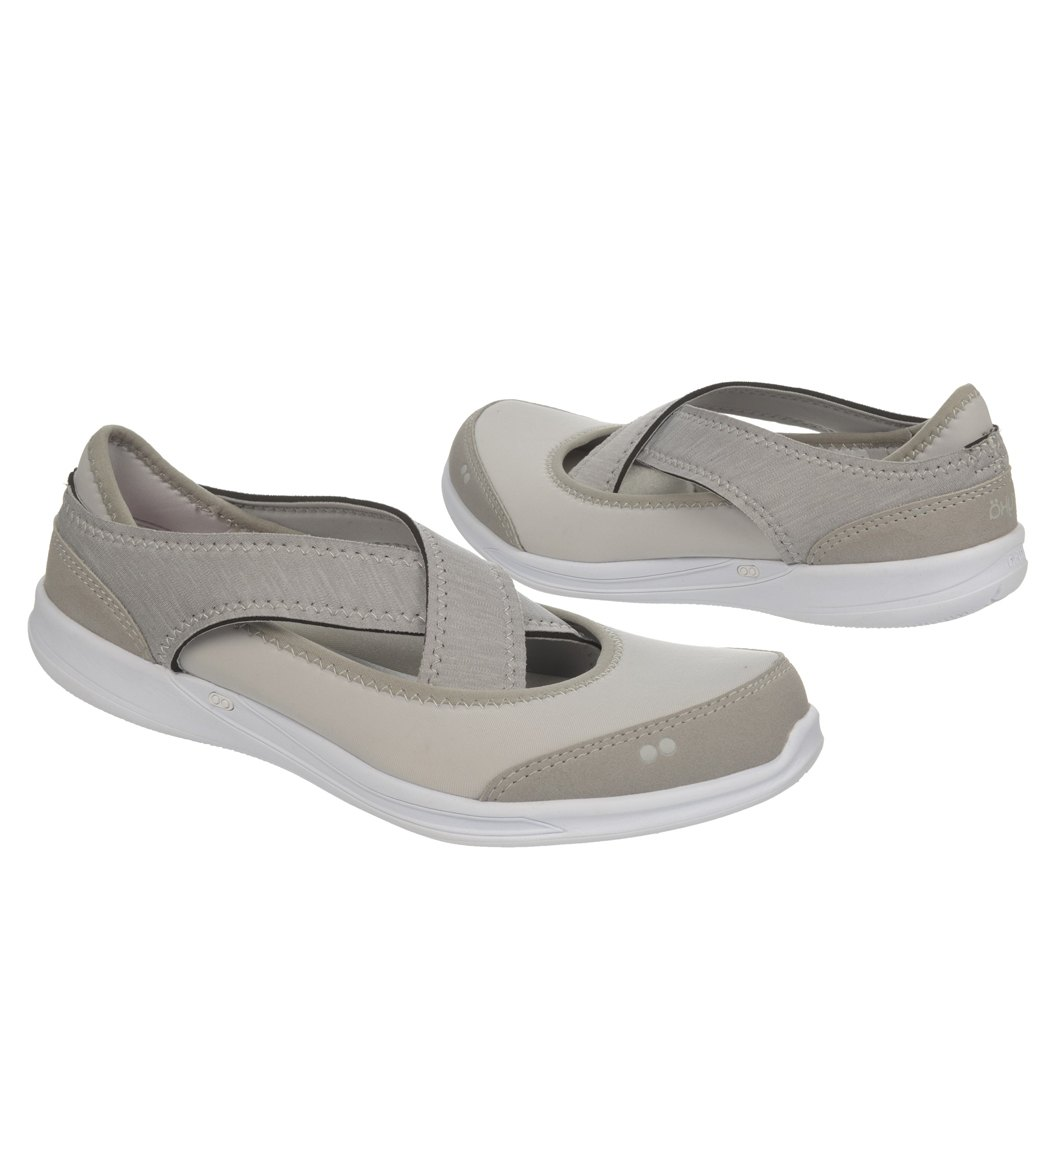 8e767ff378af Ryka Women s Mantra Slip On Water Shoes at SwimOutlet.com - Free ...